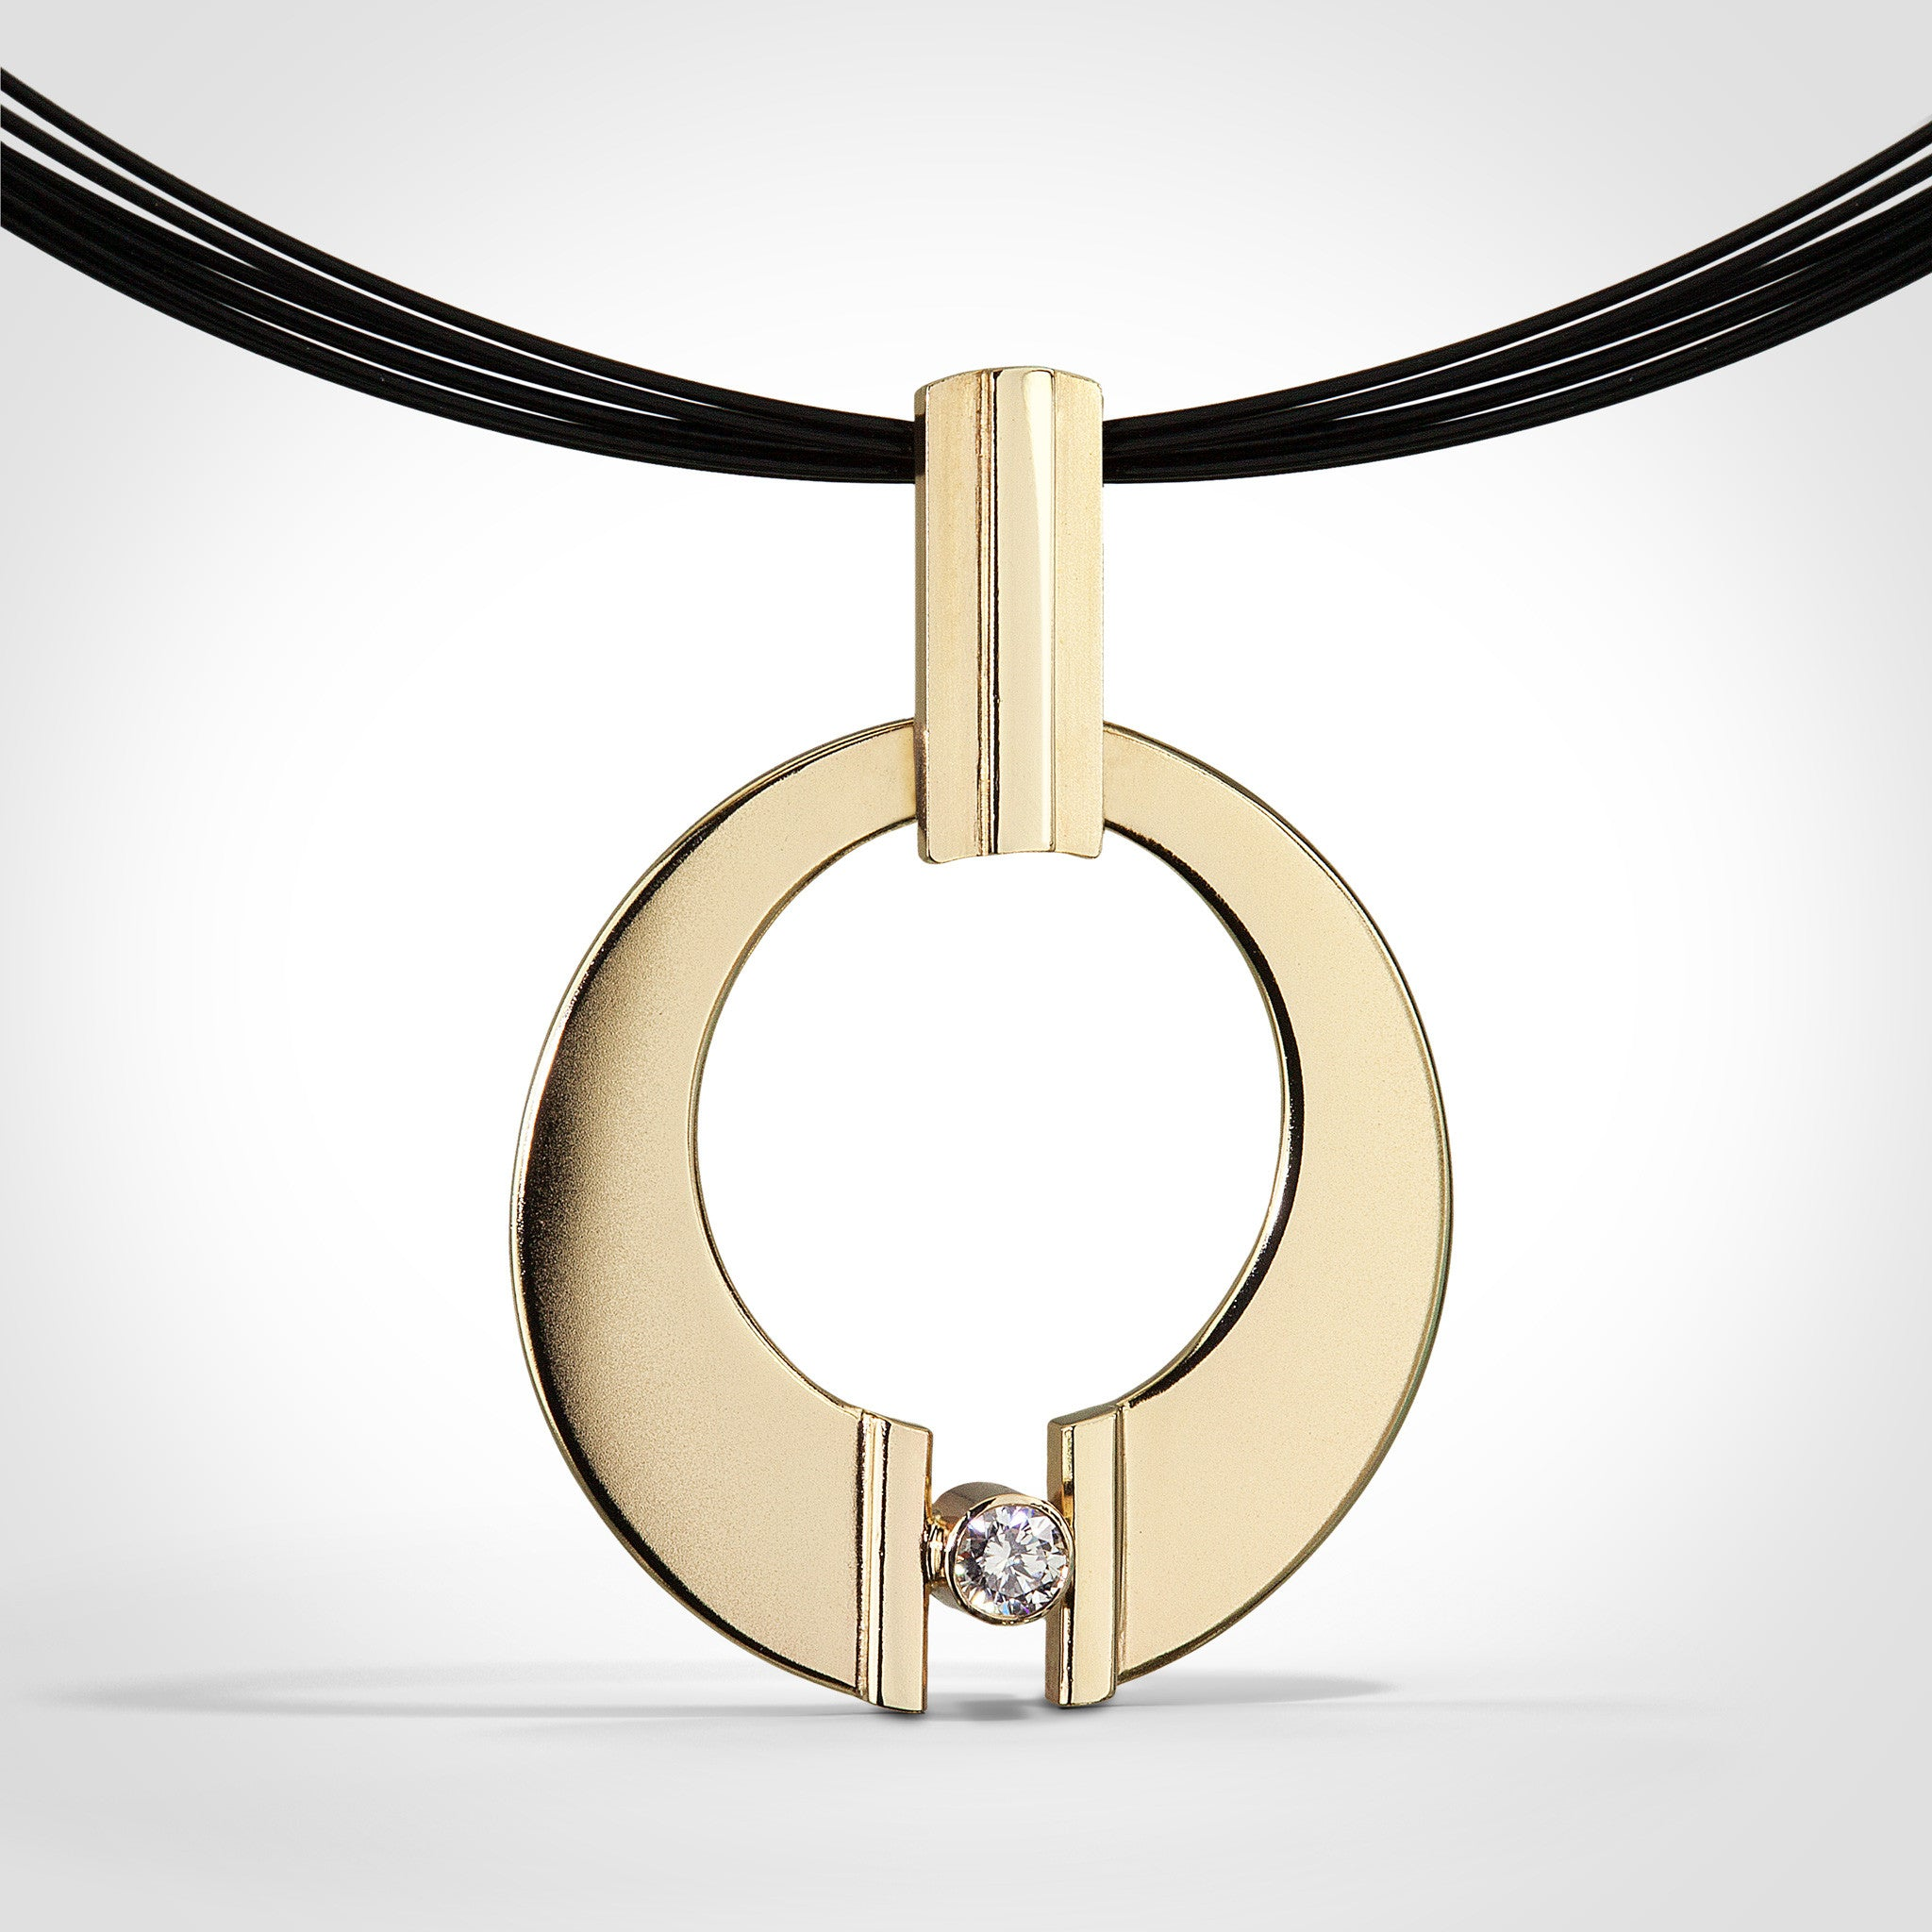 Albion - 14k yellow gold / diamond pendant